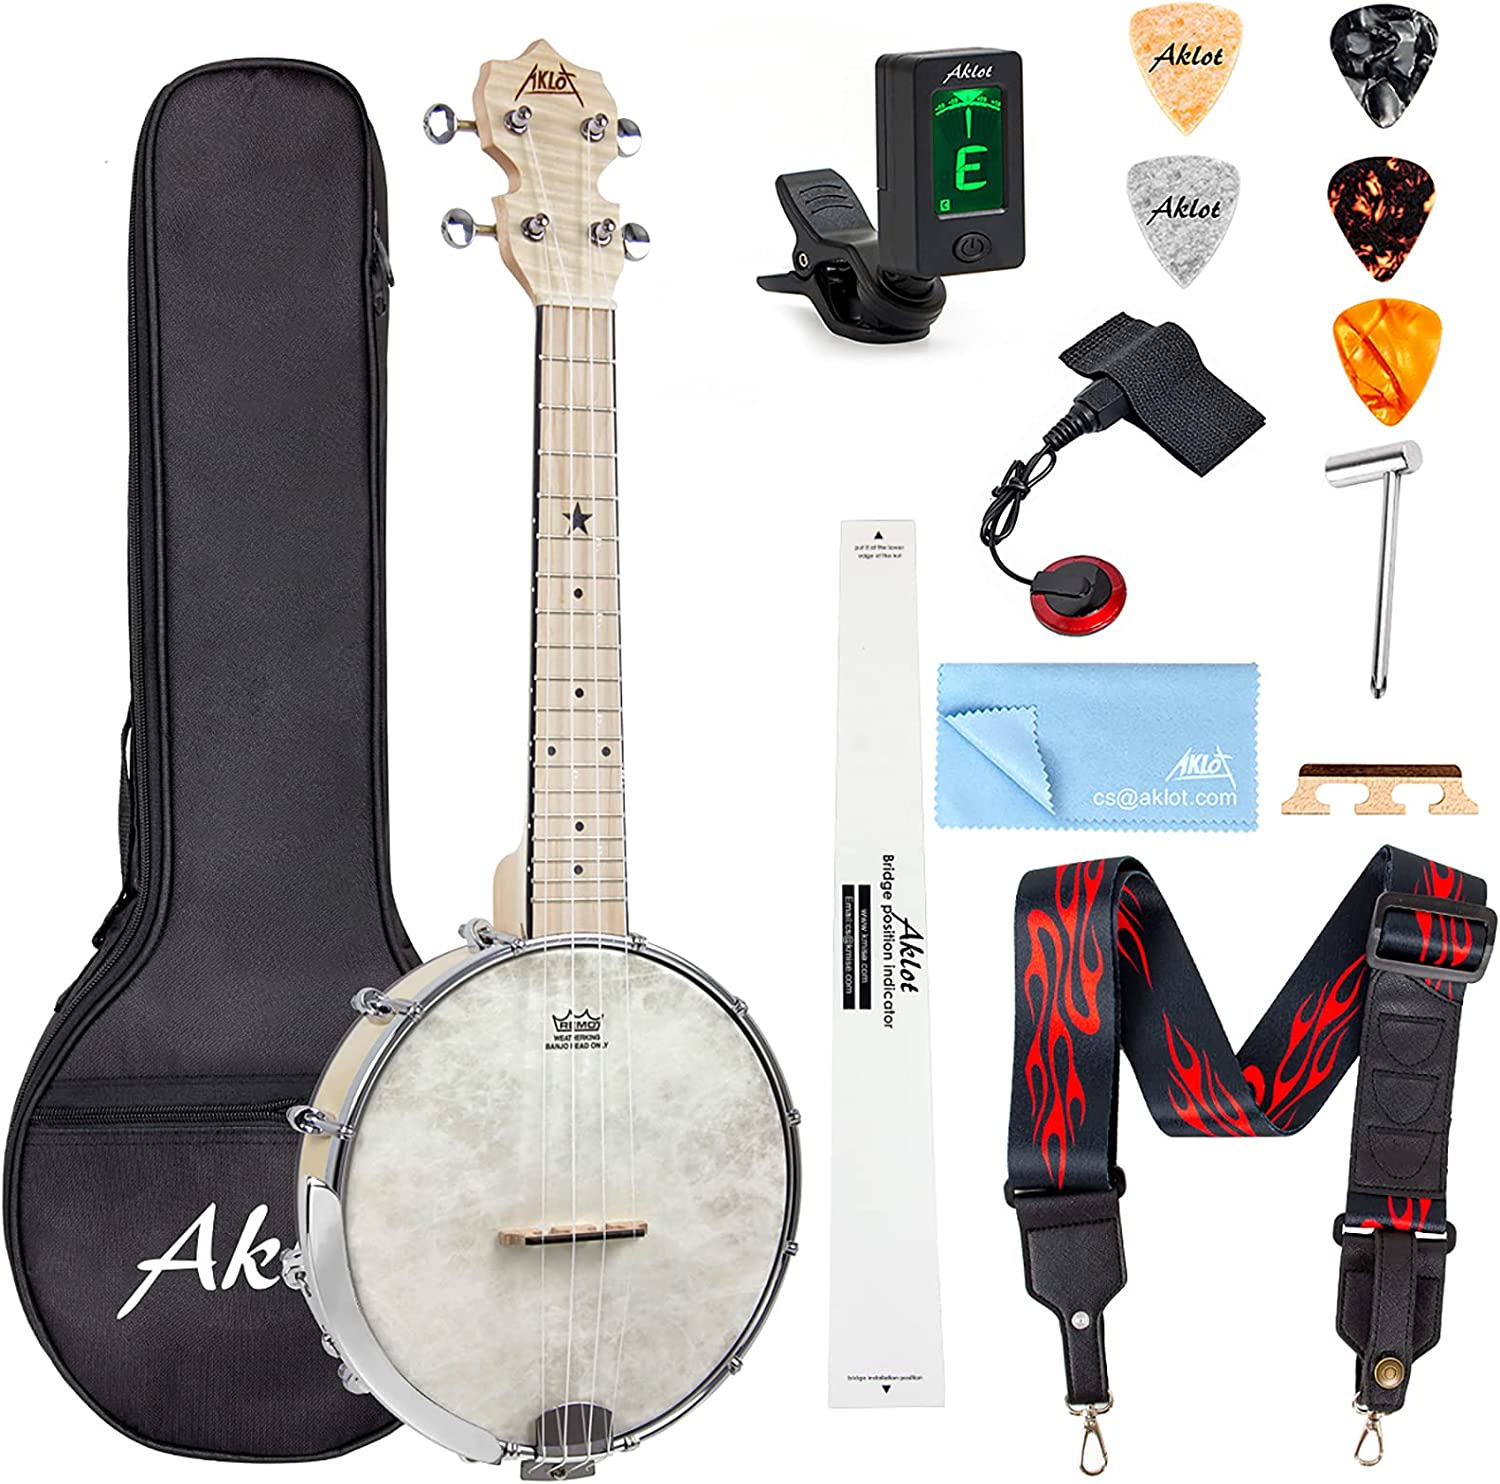 AKLOT Banjo Ukulele Concert 23 inch Remo Drumhead Back Selling and selling Mapl Open Selling rankings